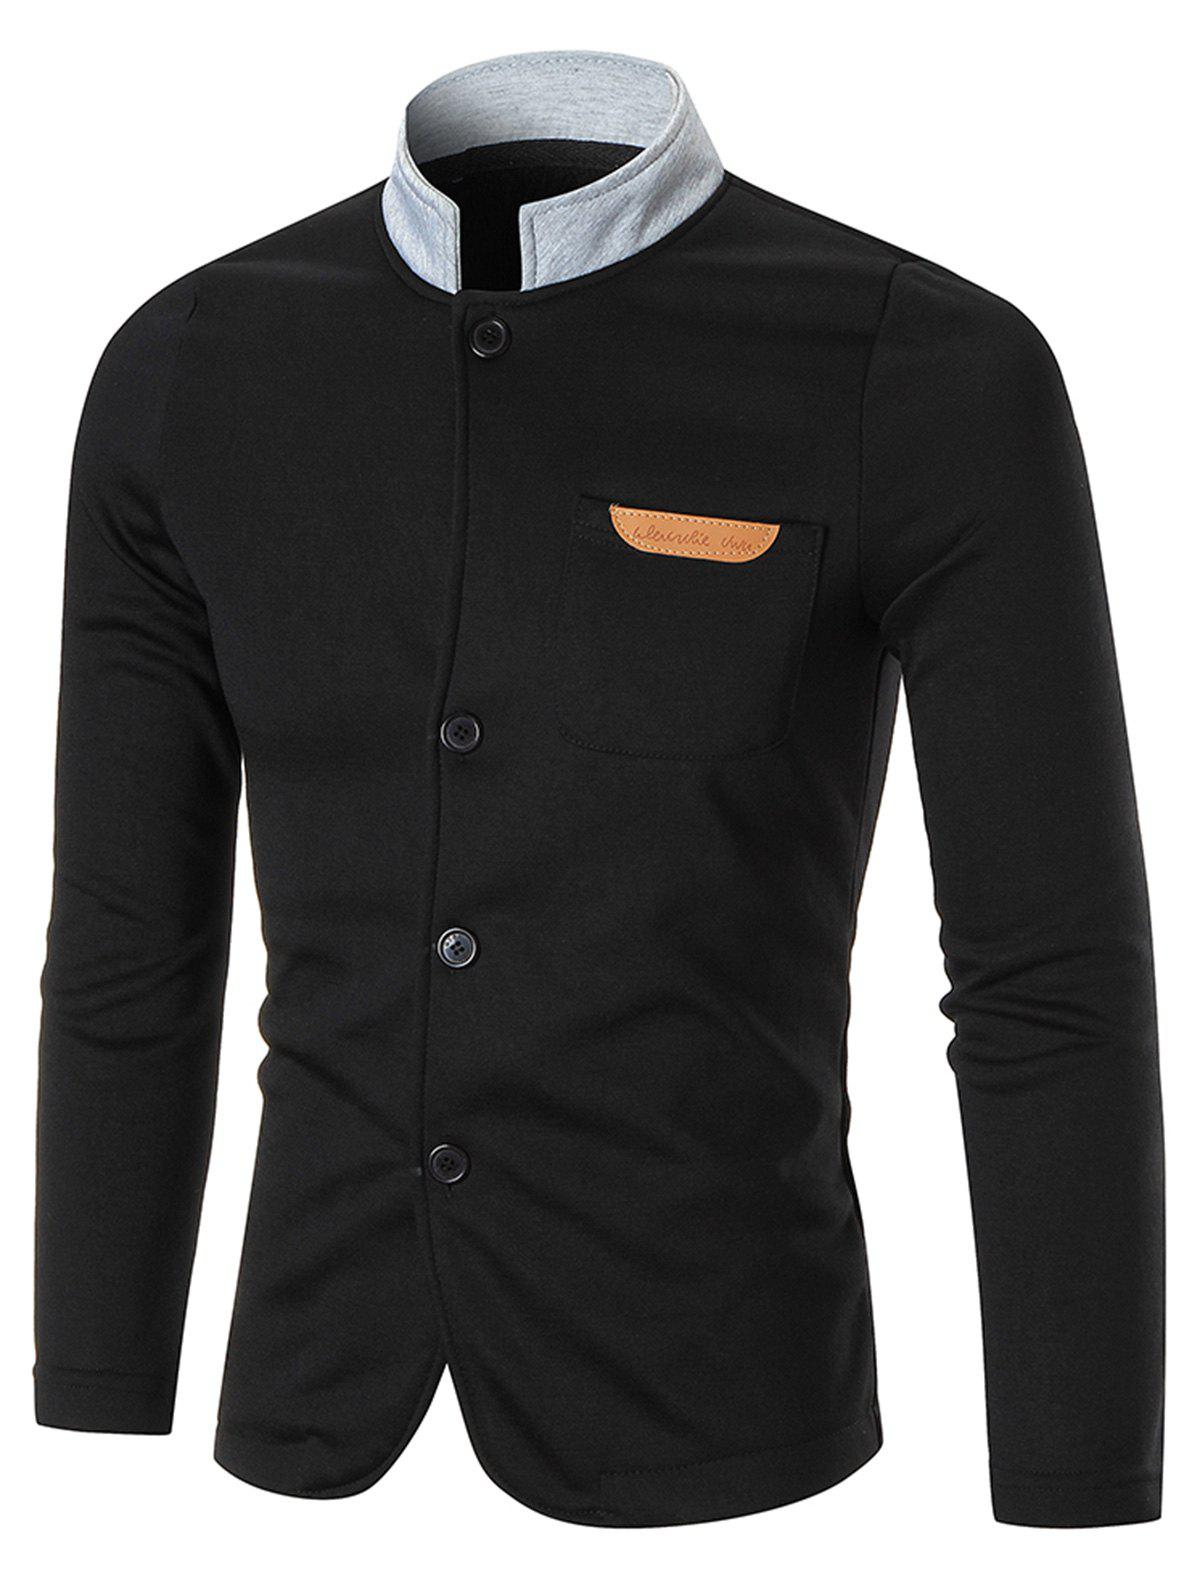 Chest Pocket Contrast Collar Button Up Jacket - BLACK 2XL